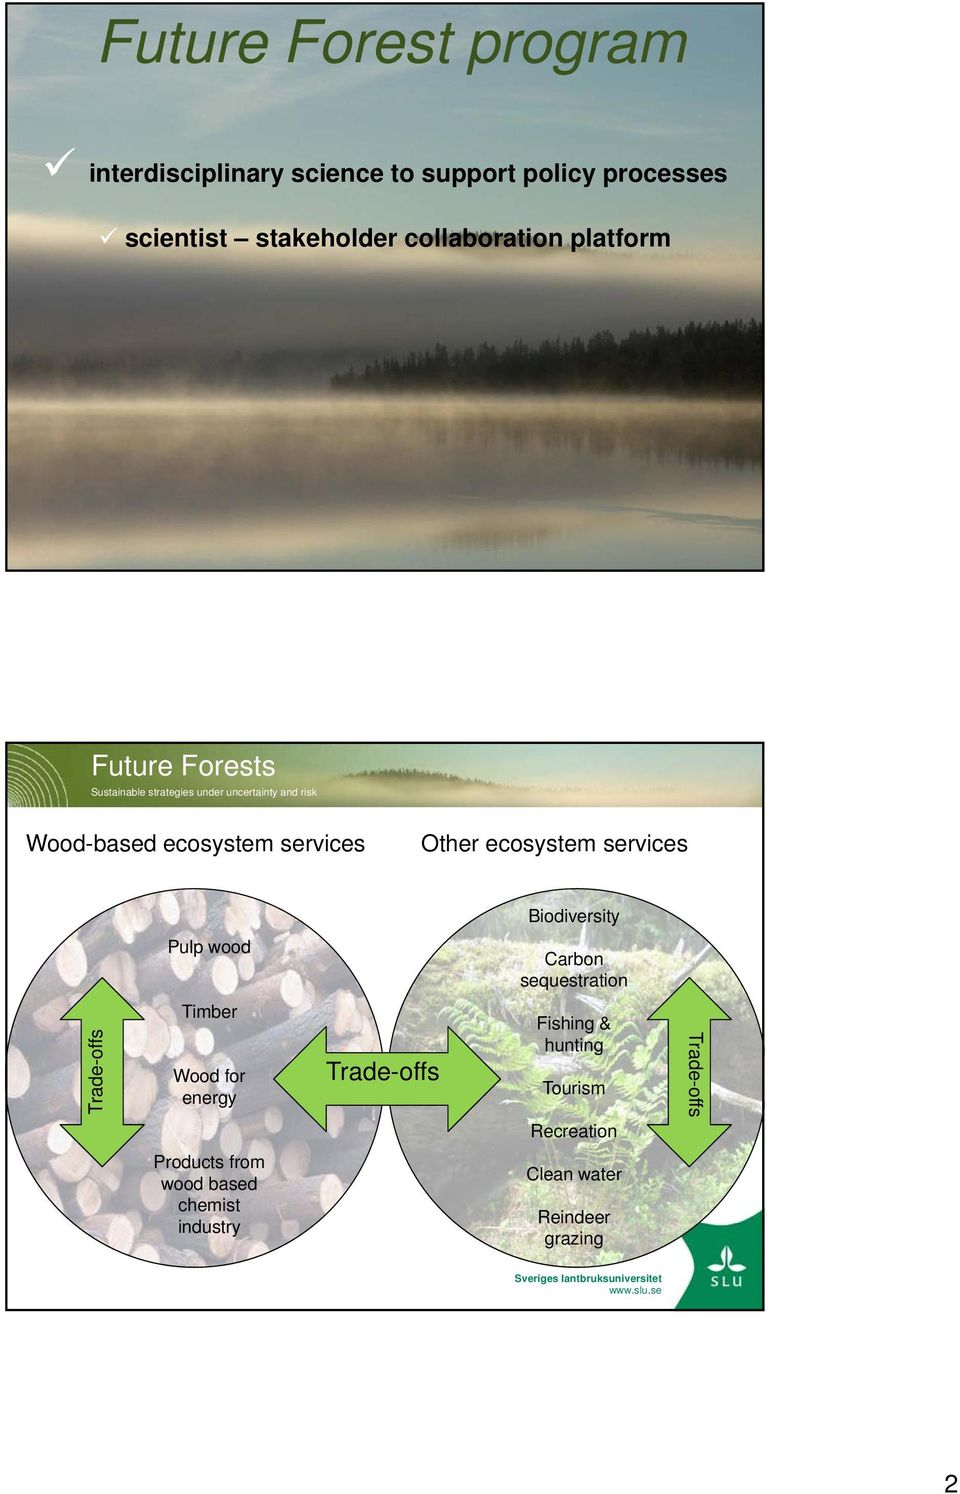 ecosystem services Biodiversity Pulp wood Carbon sequestration Trade-offs Timber Wood for energy Trade-offs